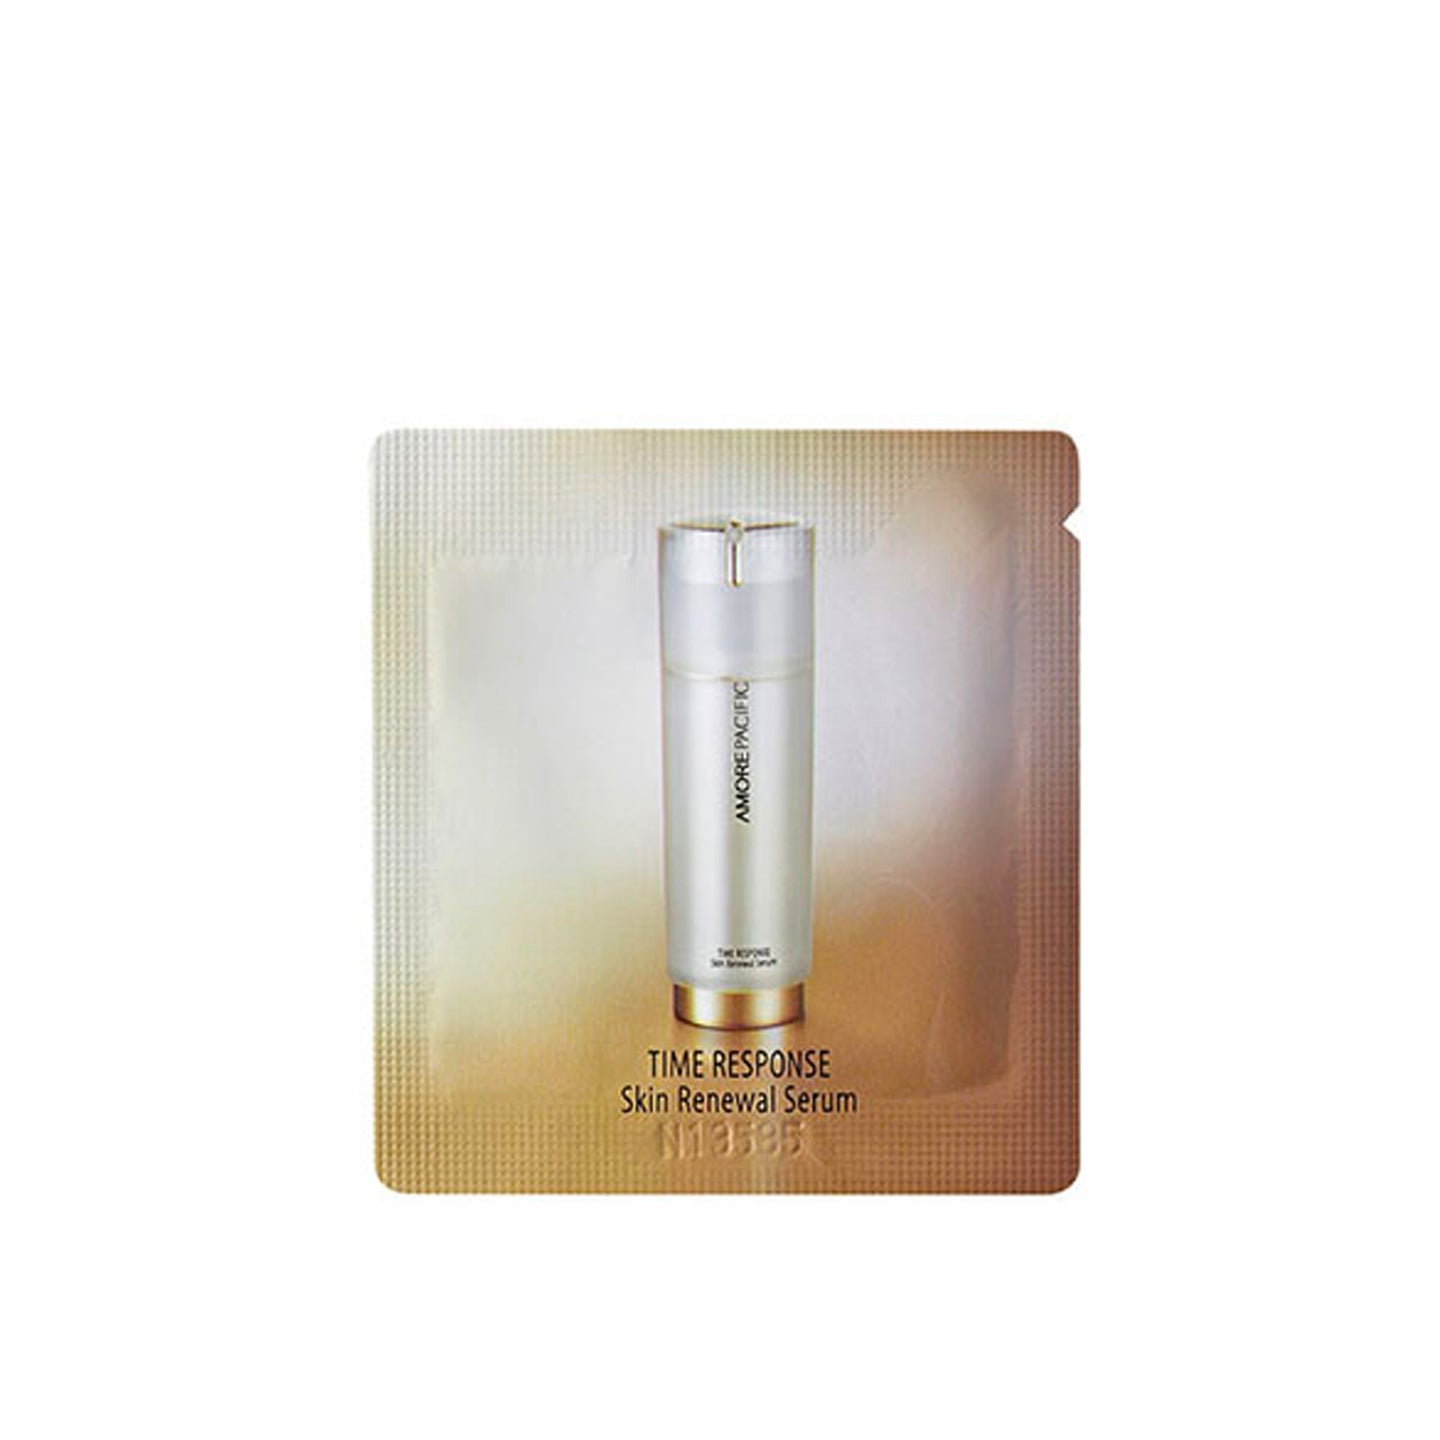 TIME RESPONSE Skin Renewal Serum (1ml)